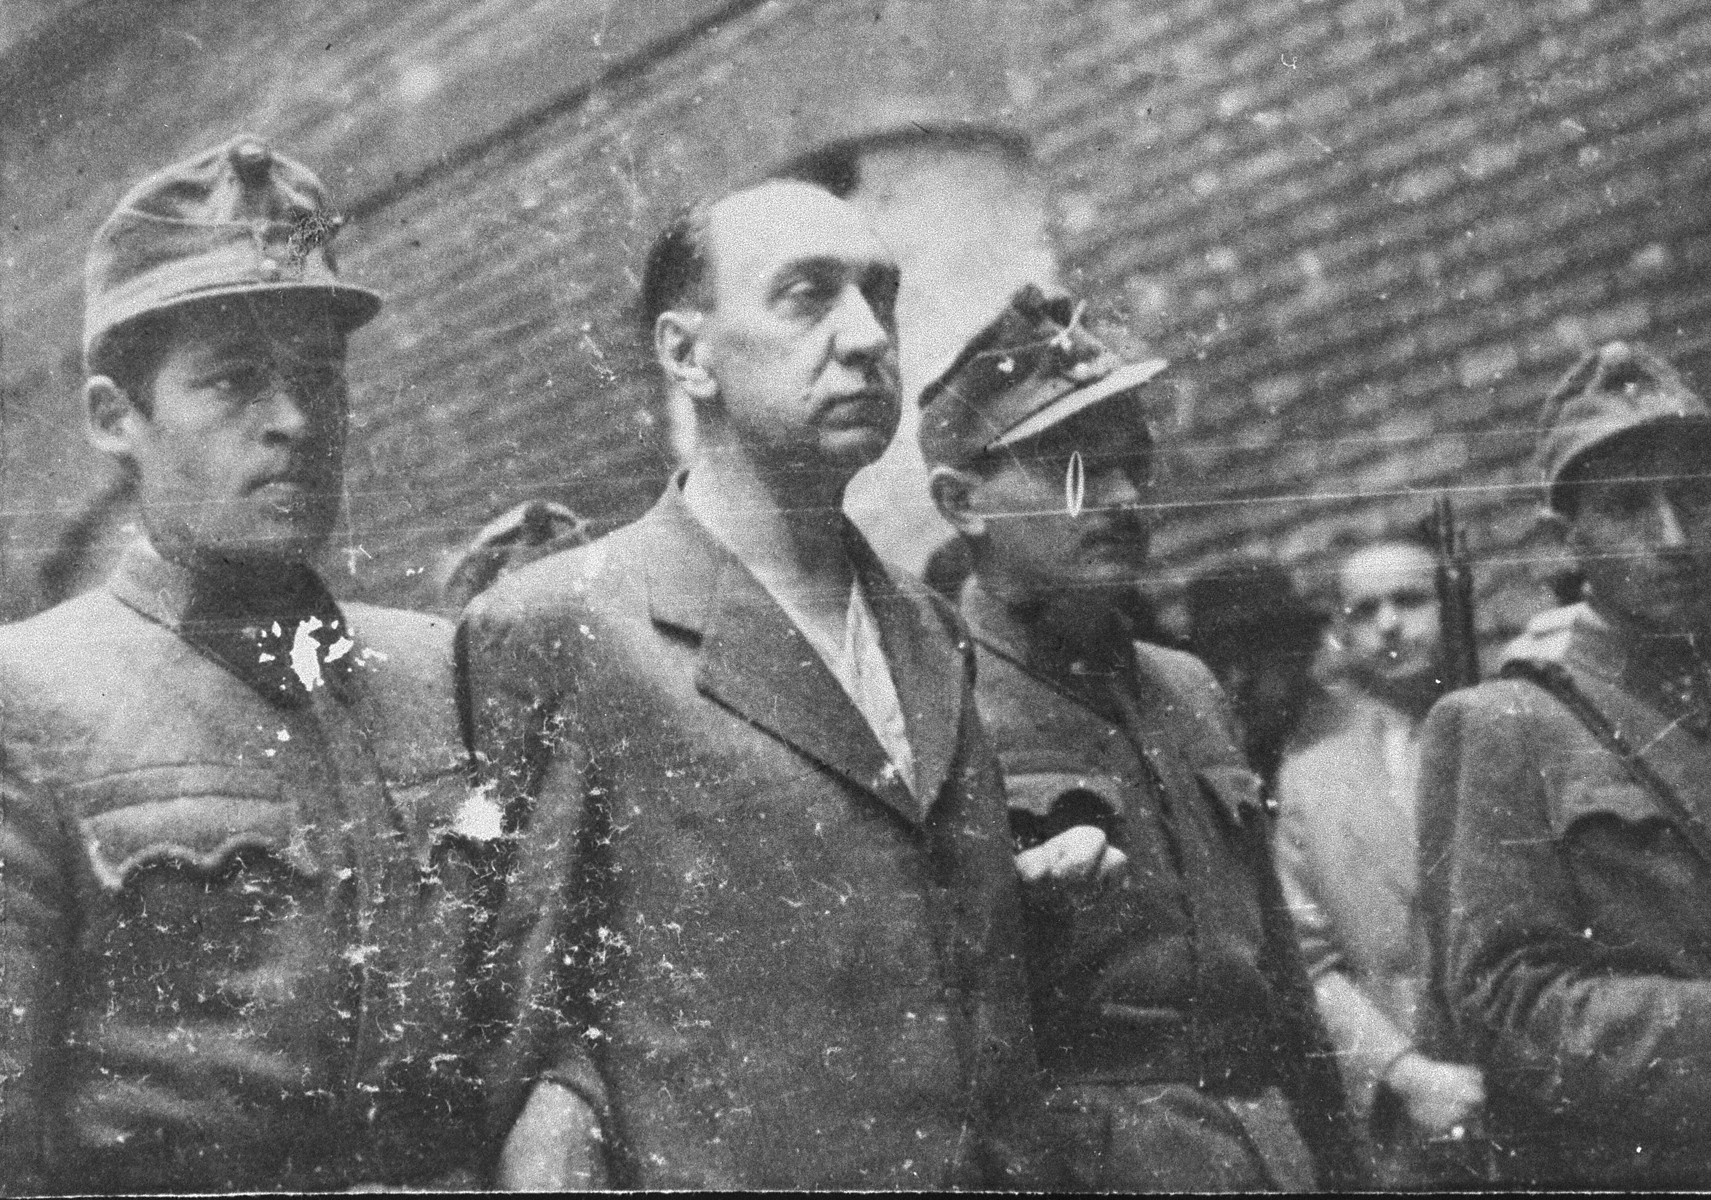 Hungarian soldiers lead former minister Lajos Remenyi-Schneller to execution in the courtyard of the Budapest Academy of Music.  Remenyi-Schneller was tried along with Dome Sztojay, Antal Kunder, Jeno Ratz, and Lajos Szasz by a People's Tribunal in the Budapest Academy of Music for his role in both the destruction of Hungarian Jewry and for sacrificing his country's interests by collaborating with the Third Reich.  The trial began on March 14, 1946 and ended only 8 days later on March 22, 1946 when all of the defendants were convicted, and subsequently executed.